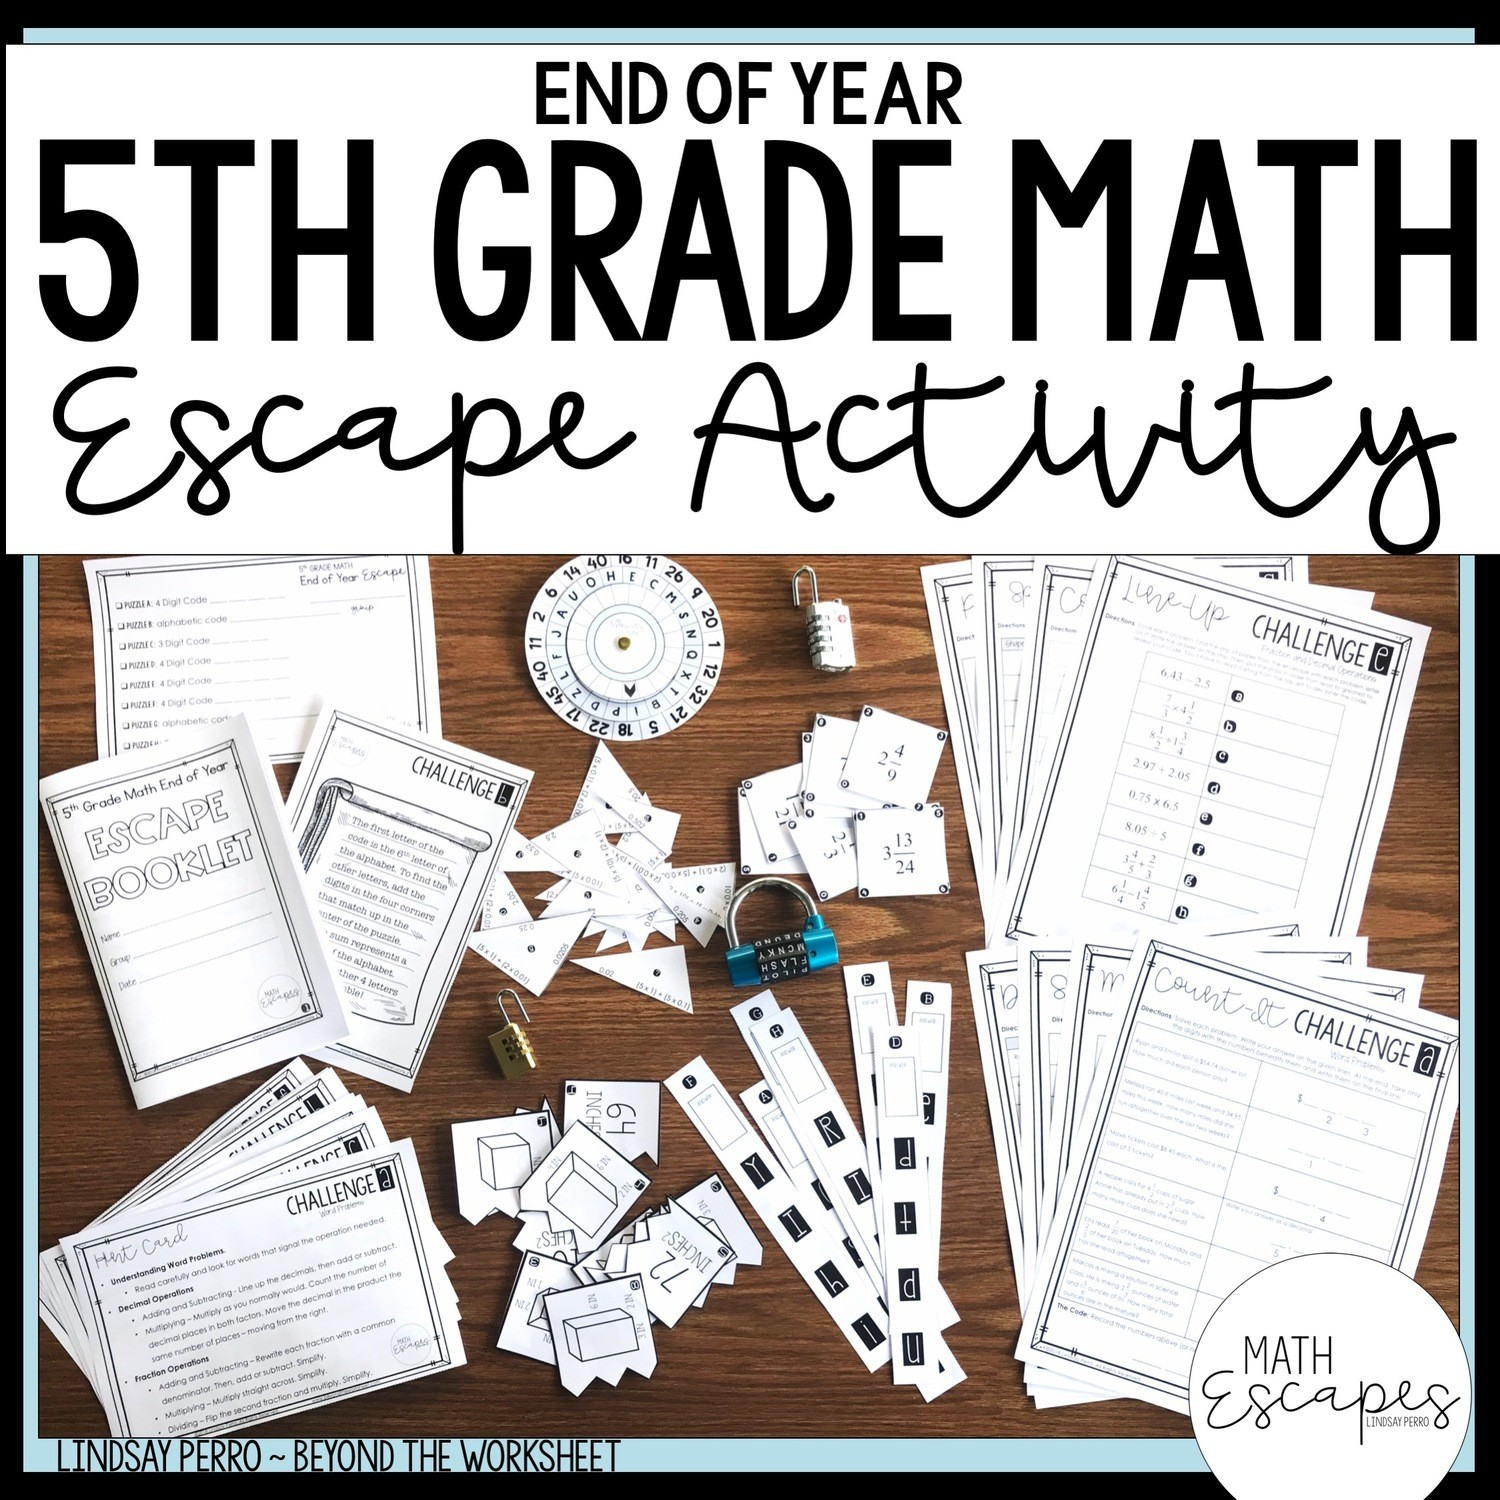 hight resolution of 5th Grade Math End of Year Escape Room Activity